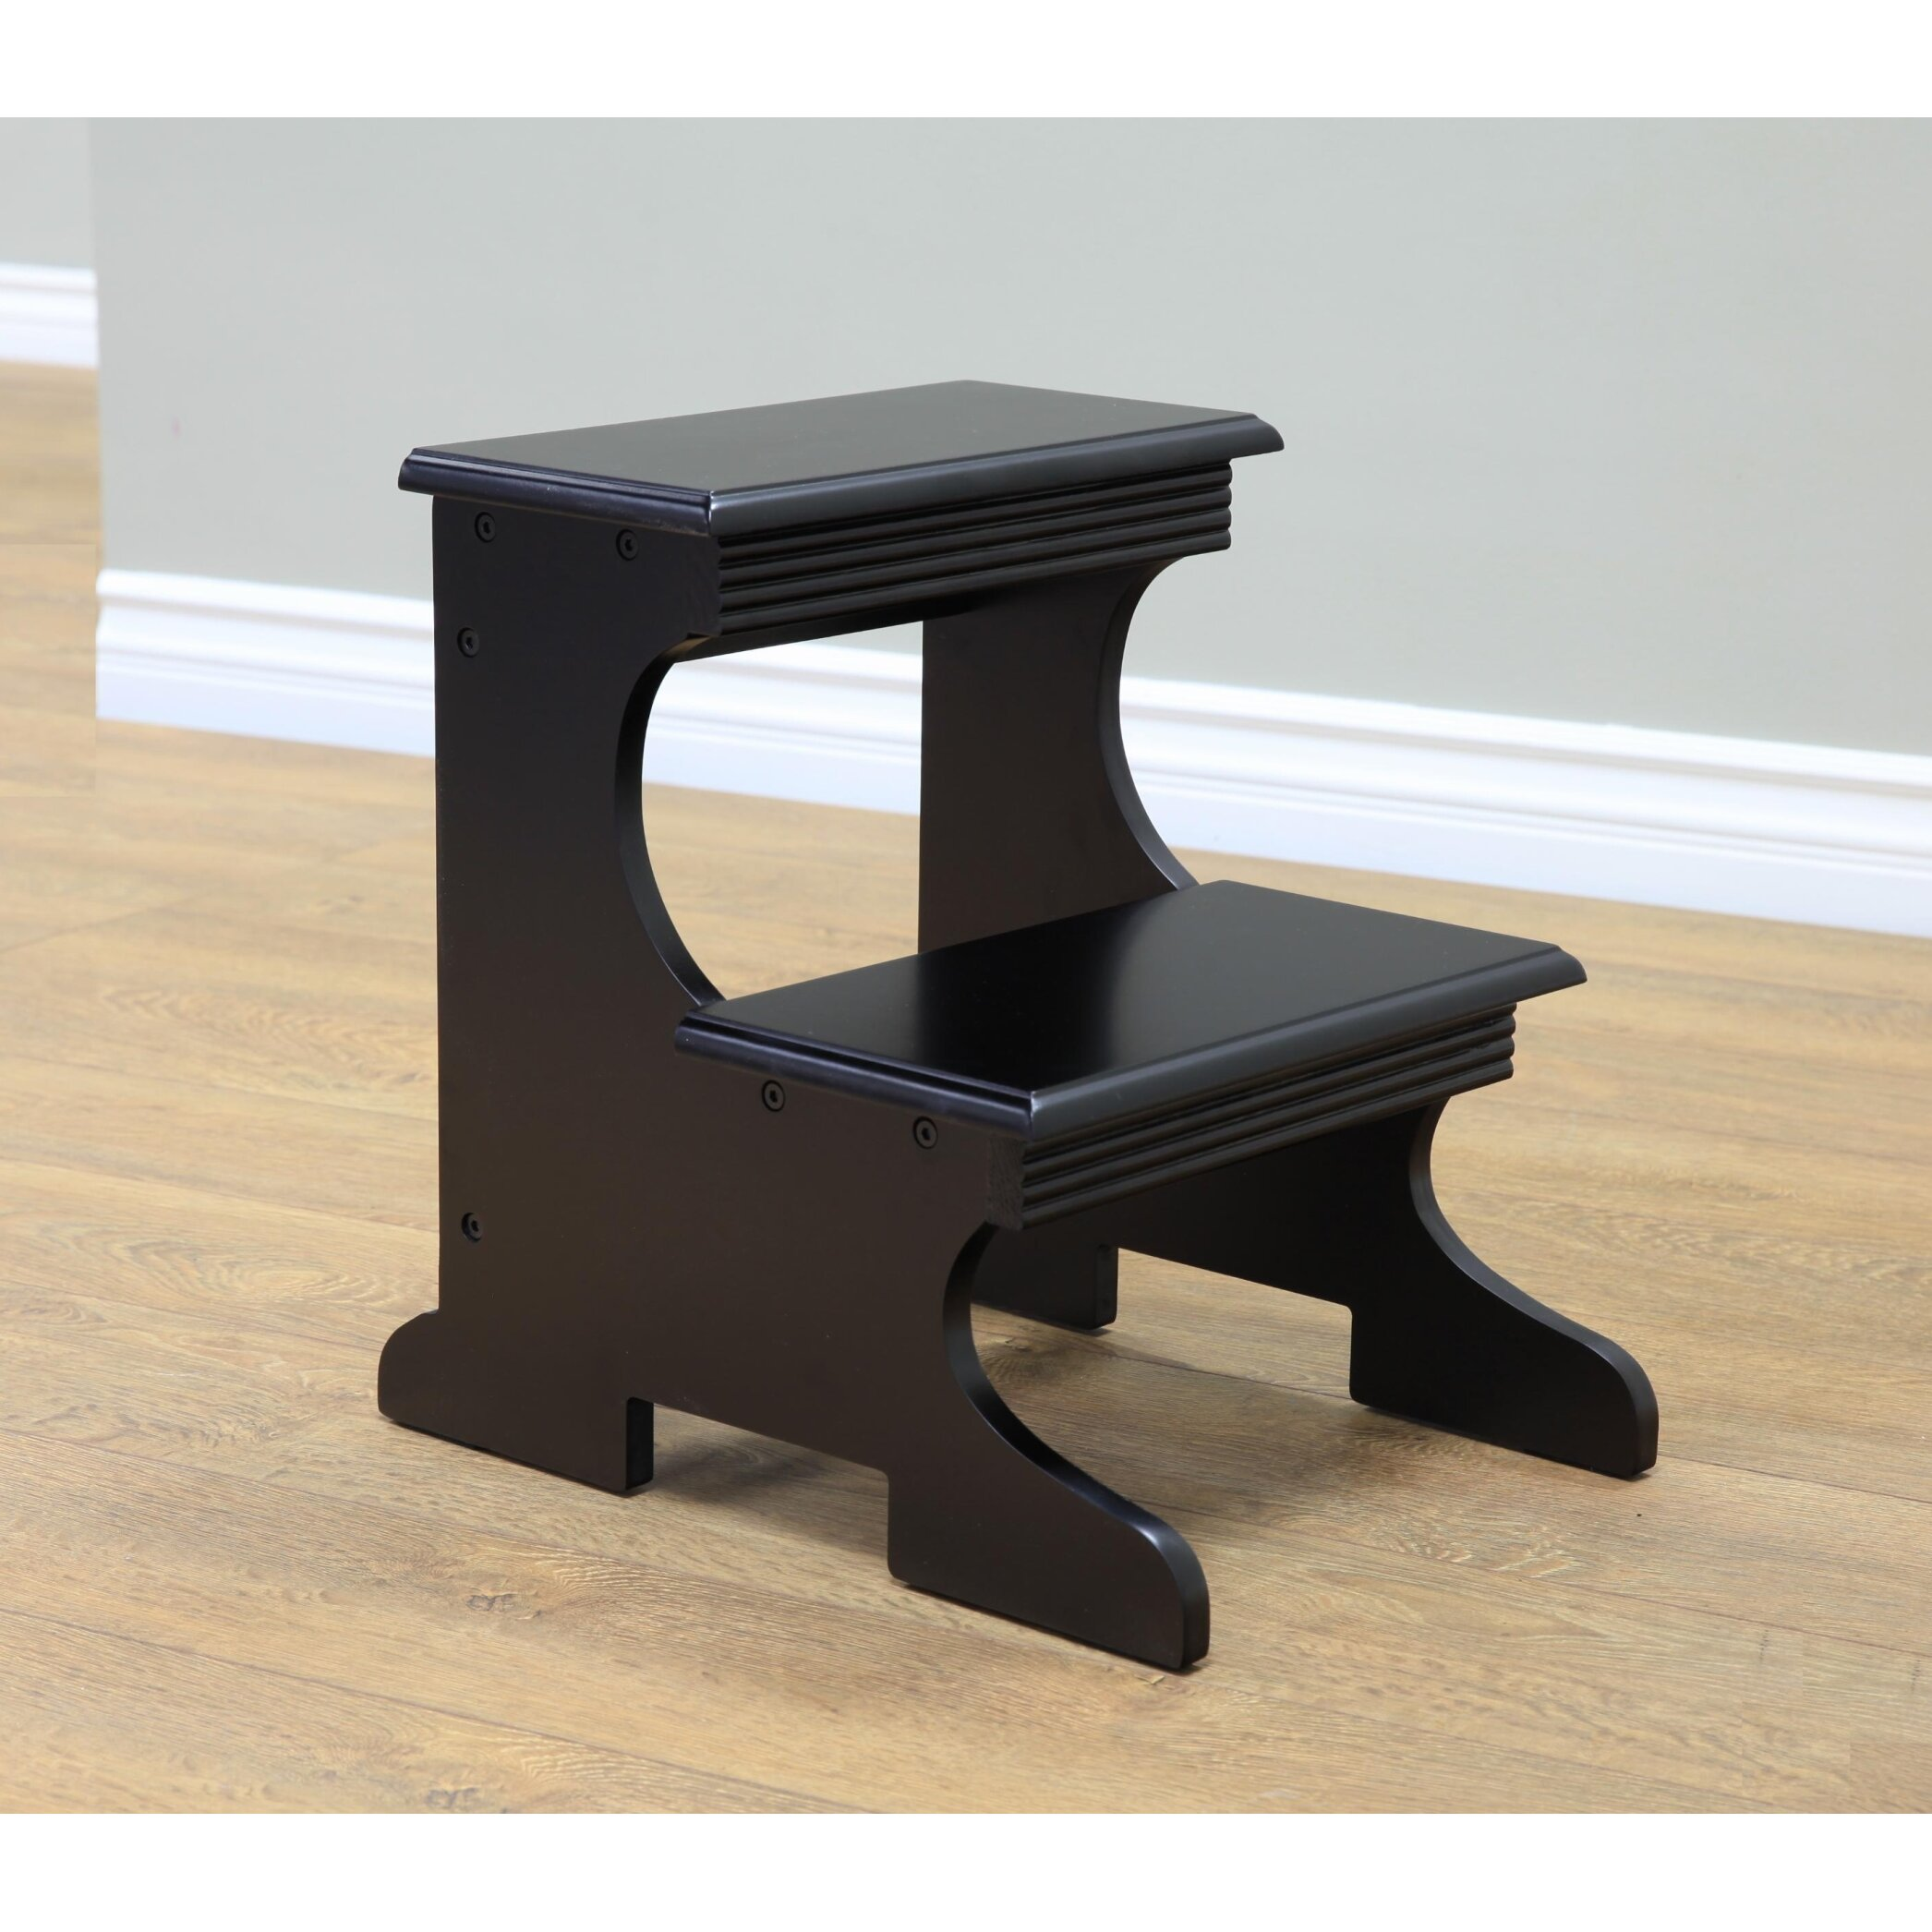 Wooden step stool for kitchen - Bath Shower Folding Kitchen Step Stool 2 Wooden Ladder